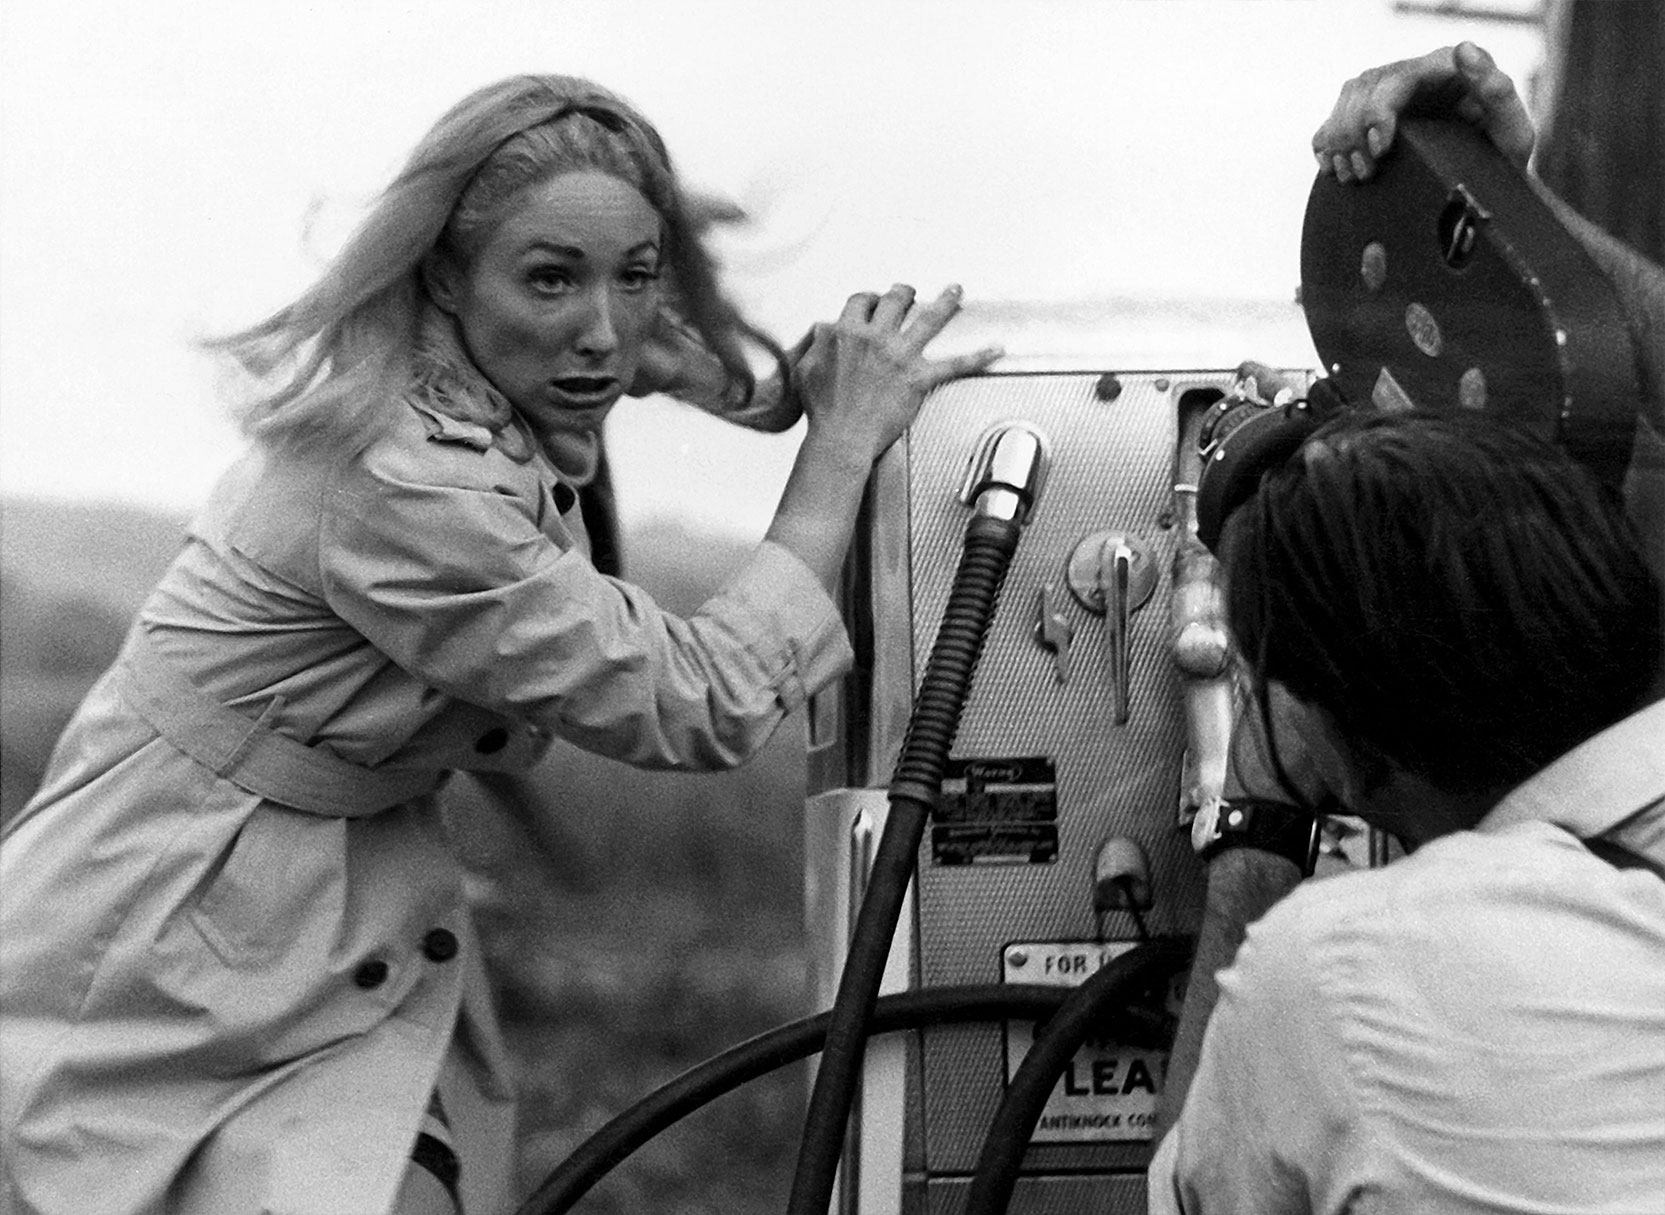 Barbra (Judith O'Dea) and Director George Romero film a scene for Night of the Living Dead. Photo © Image Ten, Inc. All Rights Reserved